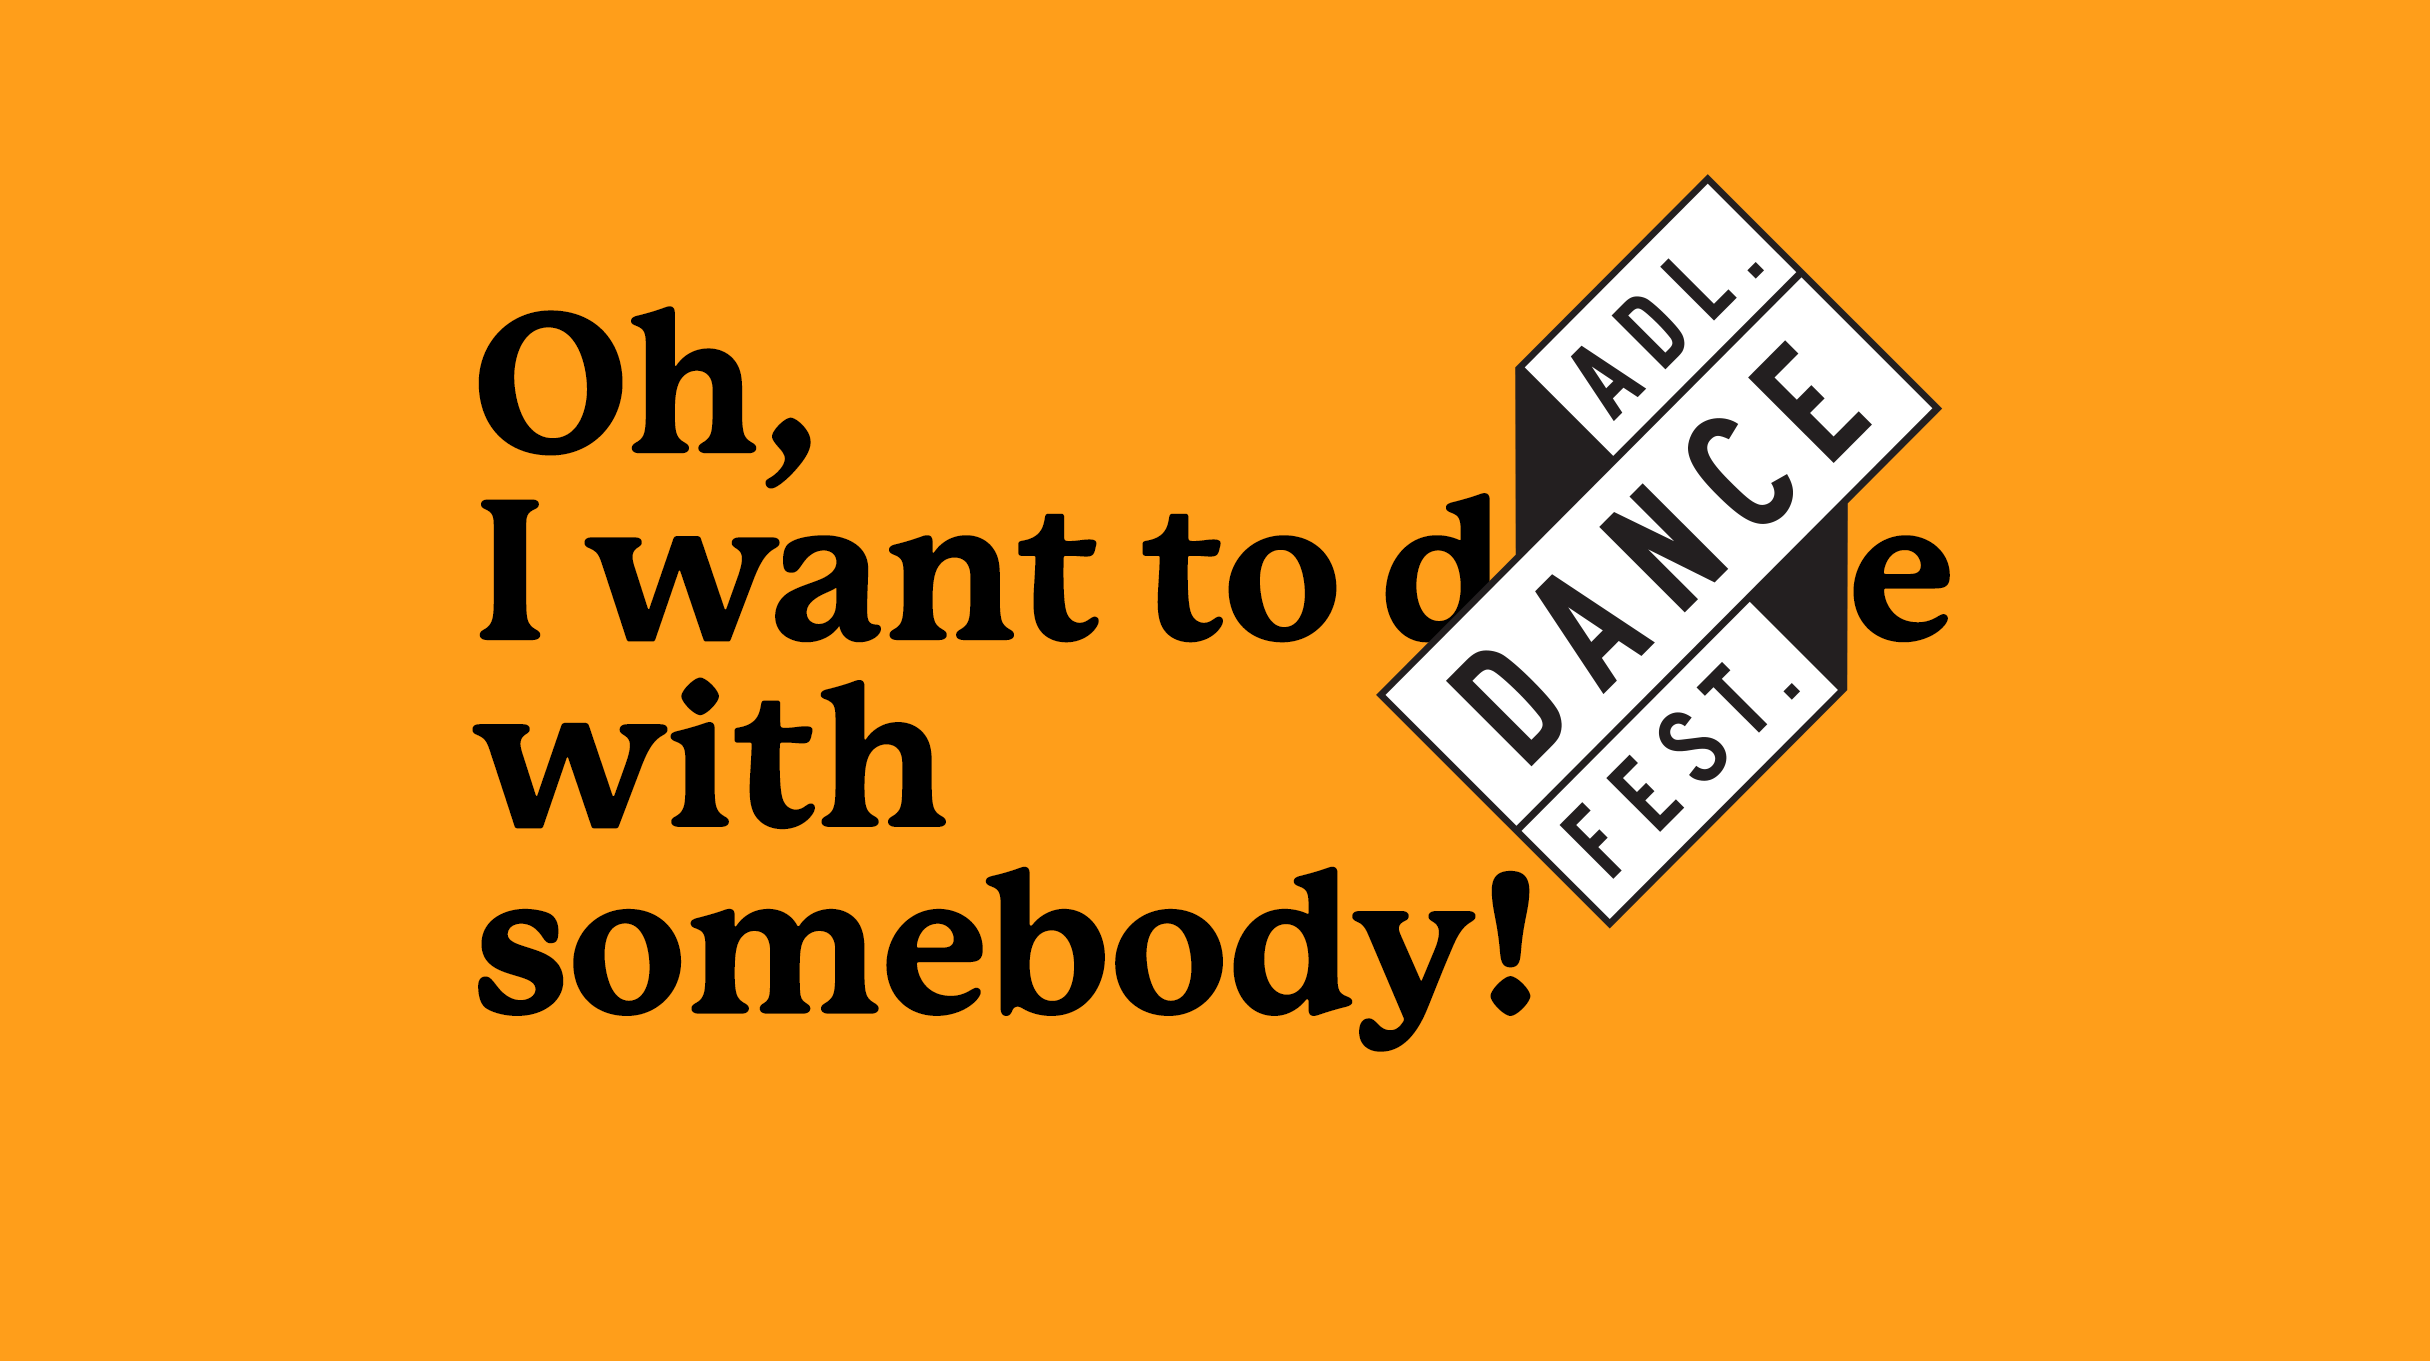 Oh! I want to (Adelaide Dance Festival) with somebody!